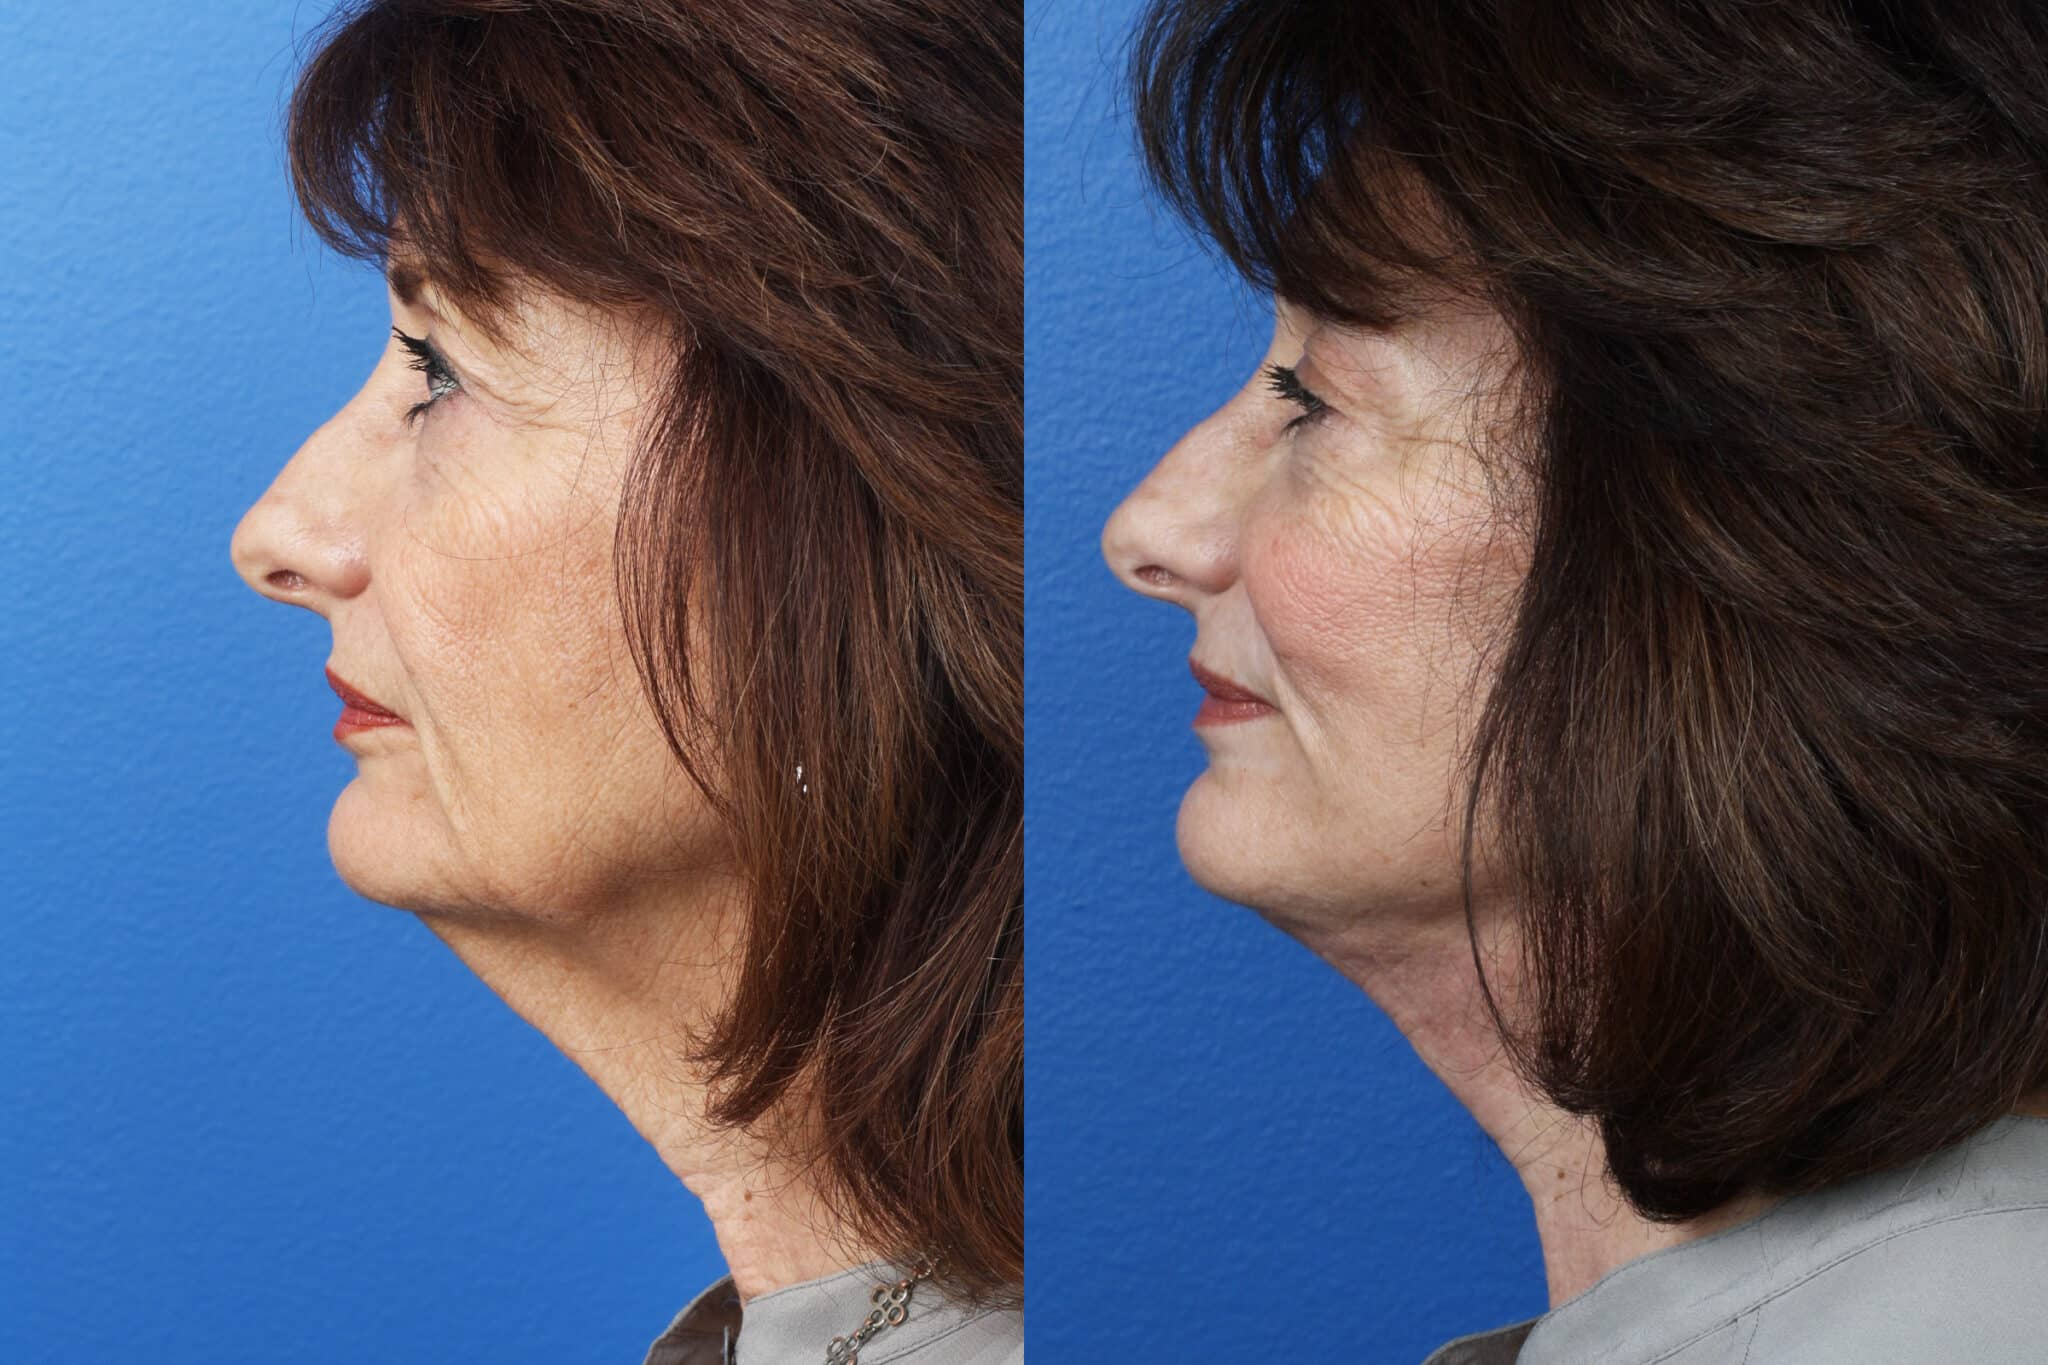 Facelift, Neck Lift, and Dermabrasion to Rejuvenate the Face of a Female Patient by Dr. Miller